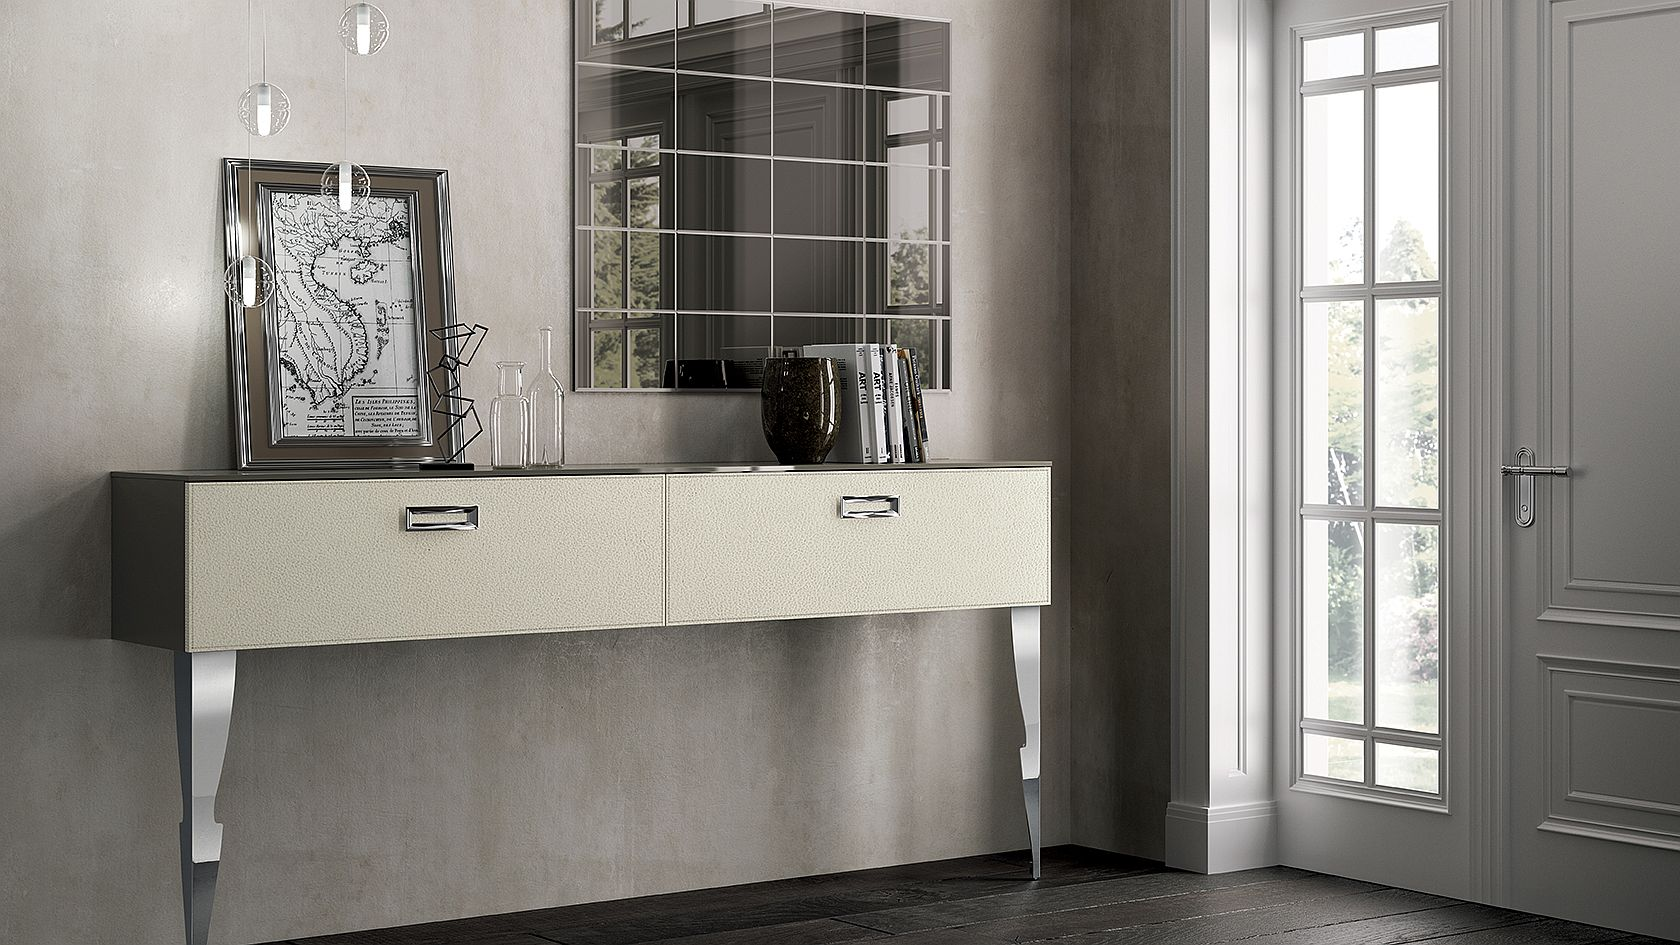 Classical style combined with modern elements in the Exclusiva Collection